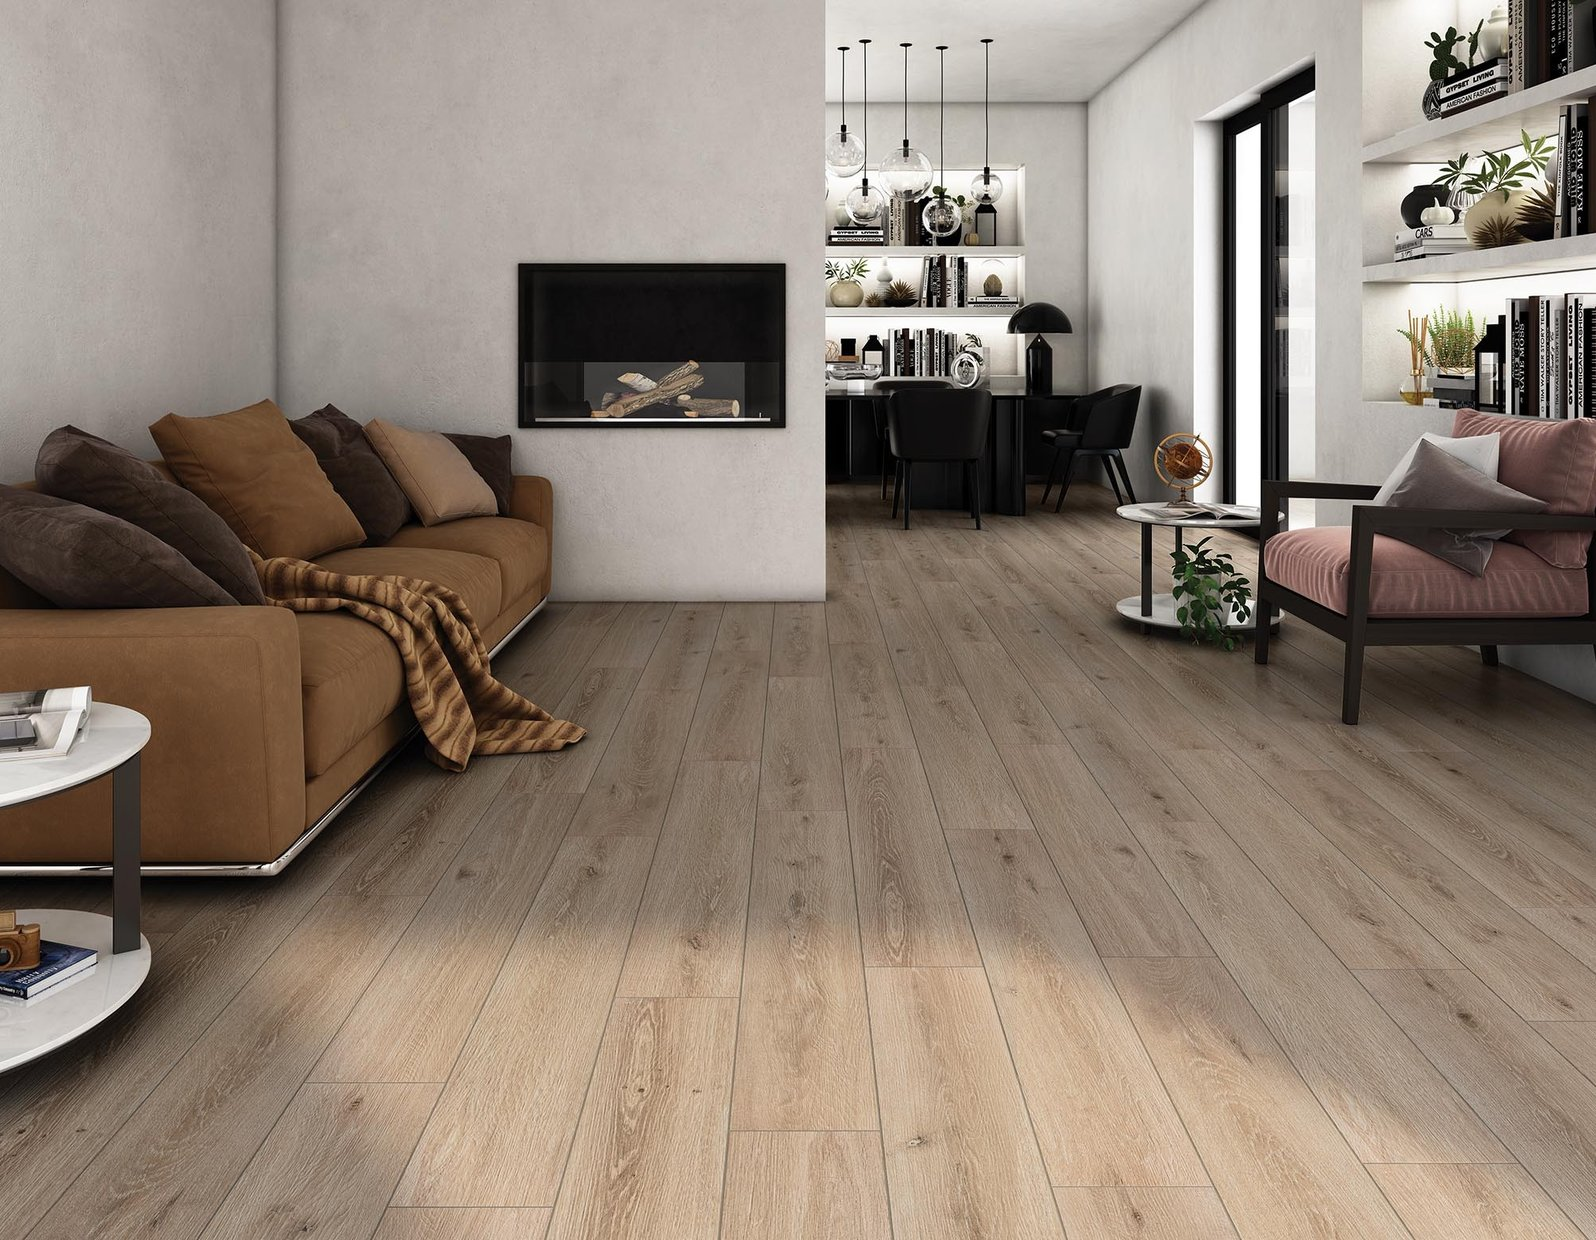 sigurt wood Brown tiles Modern style Living